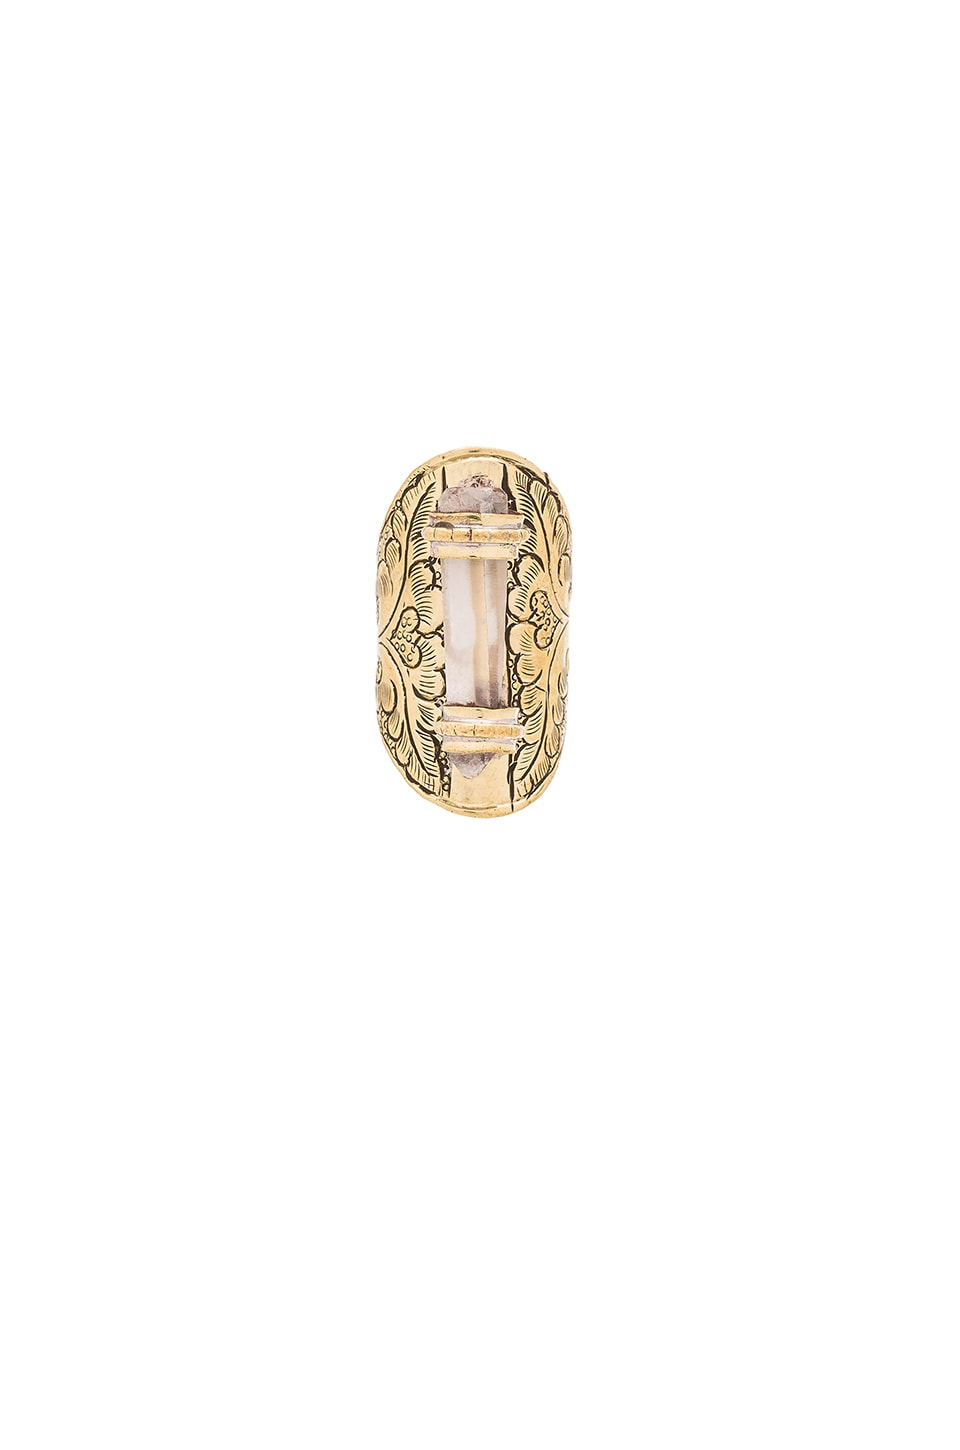 Natalie B Jewelry Crystal Ring in Brass & Clear Crystal